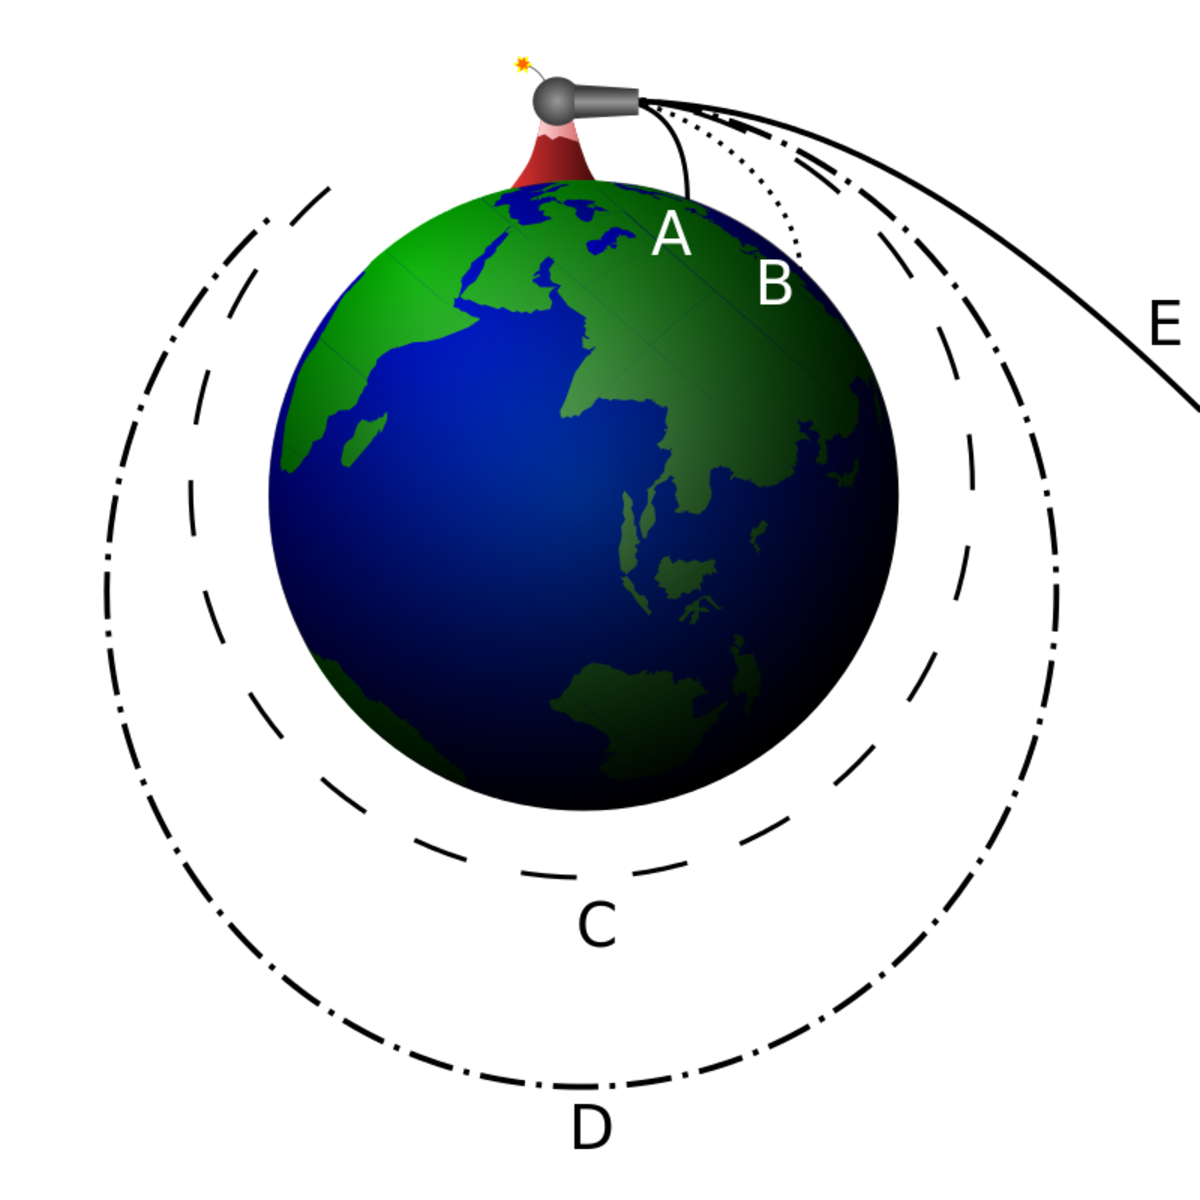 Newton's cannonball. If the velocity is increased sufficiently, the cannonball will travel all the way around the Earth.